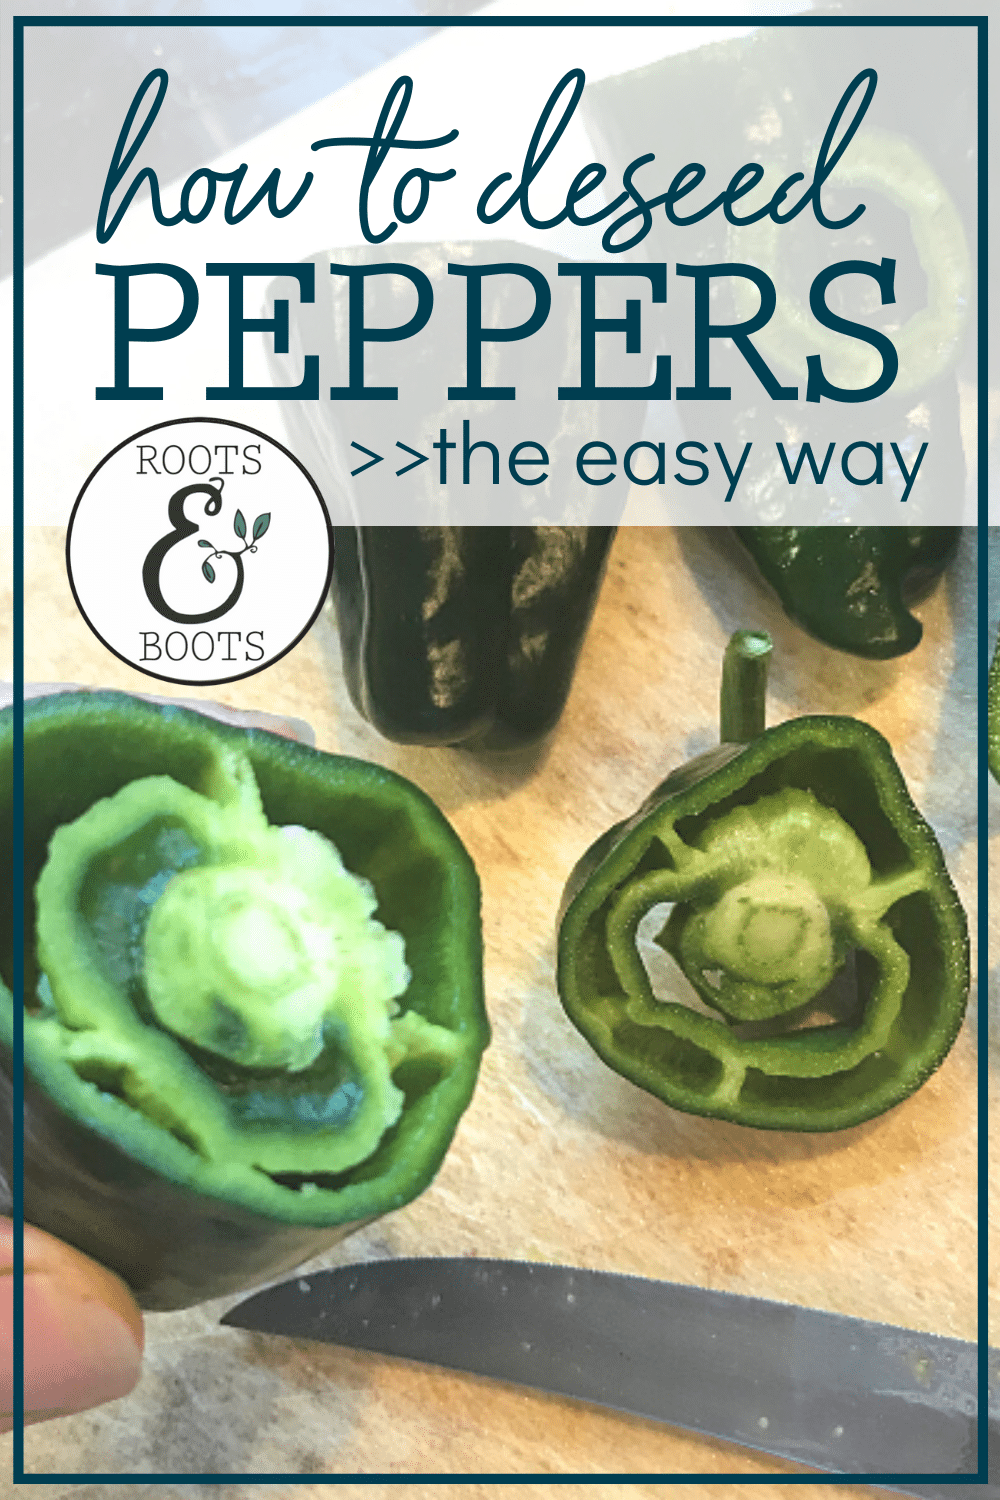 The Easiest Way To Deseed A Pepper | Roots & Boots